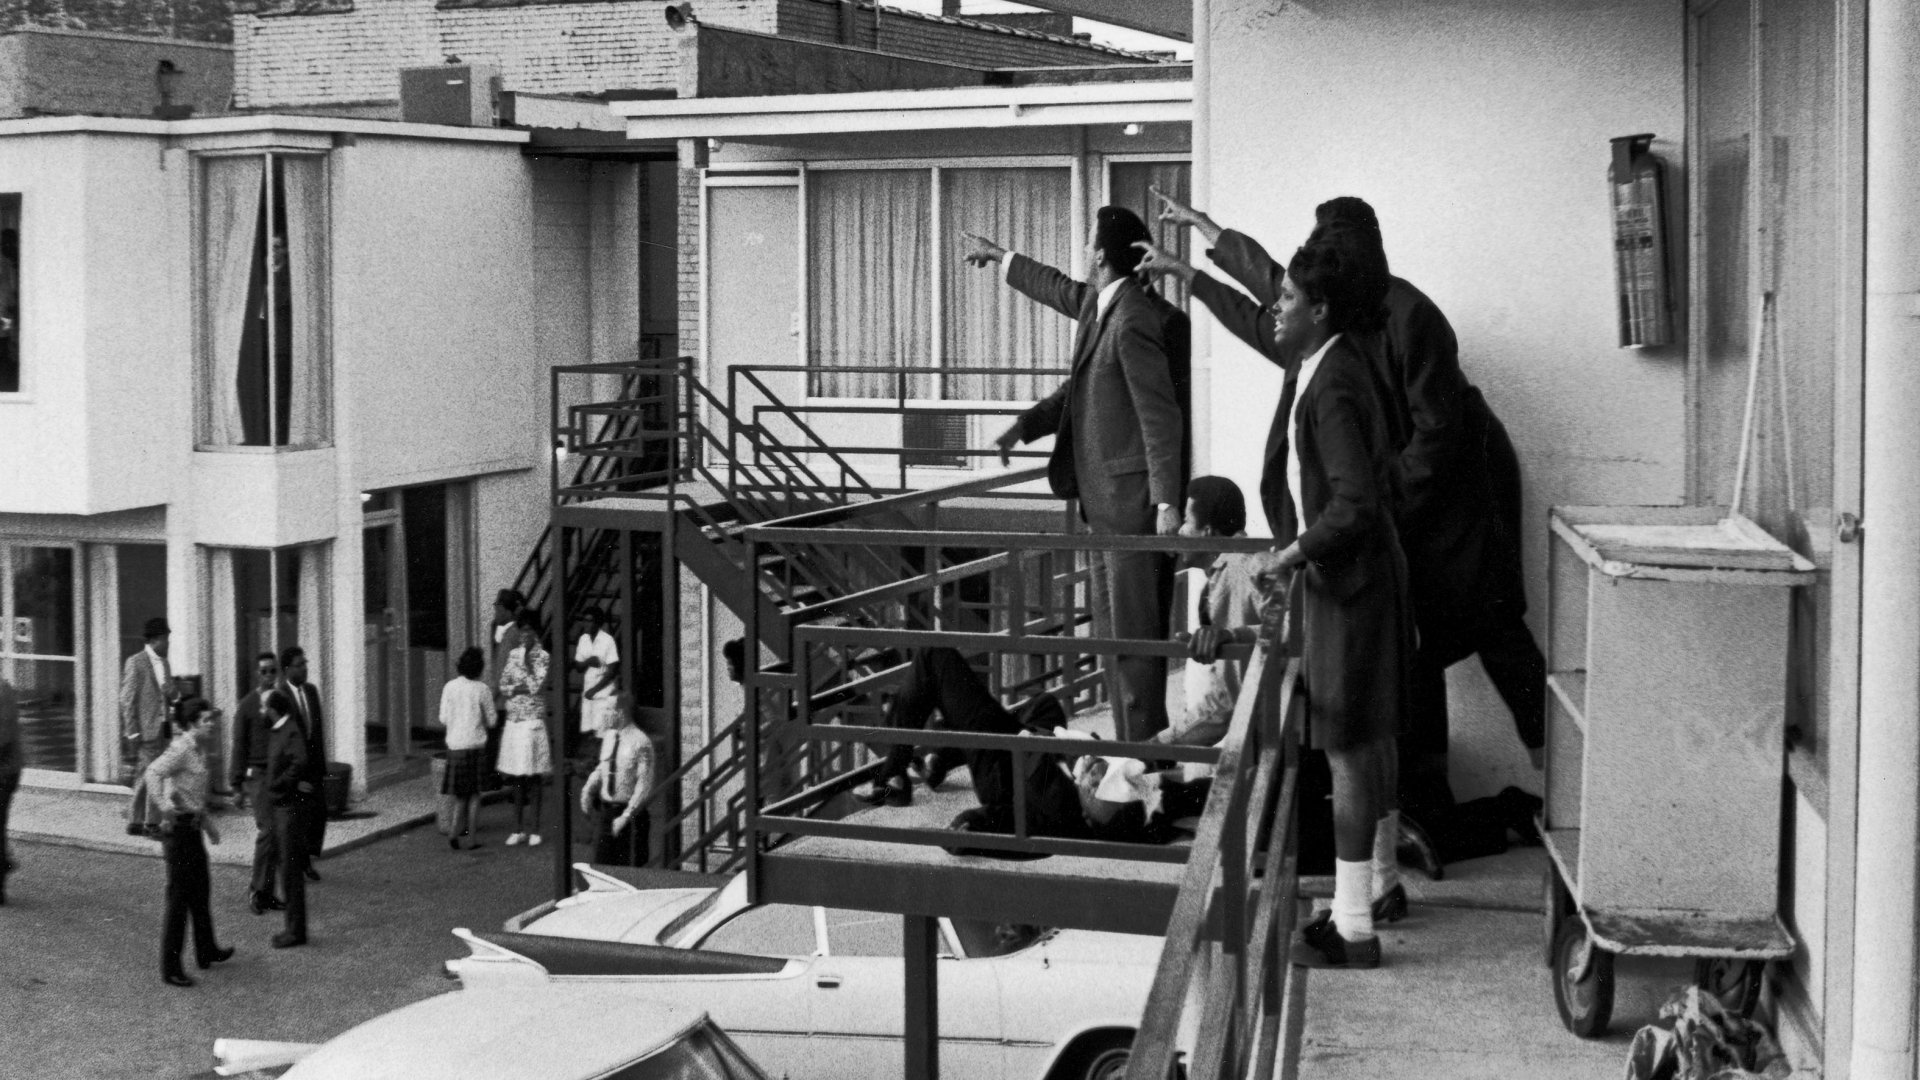 Dr. Ralph Abernathy, Jesse Jackson and others standing on the balcony of Lorraine Motel and point in the direction of gun shots that killed American civil rights leader Dr. Martin Luther King, Jr., who lies at their feet. (Credit: Joseph Louw/The LIFE Images Collection/Getty Images)